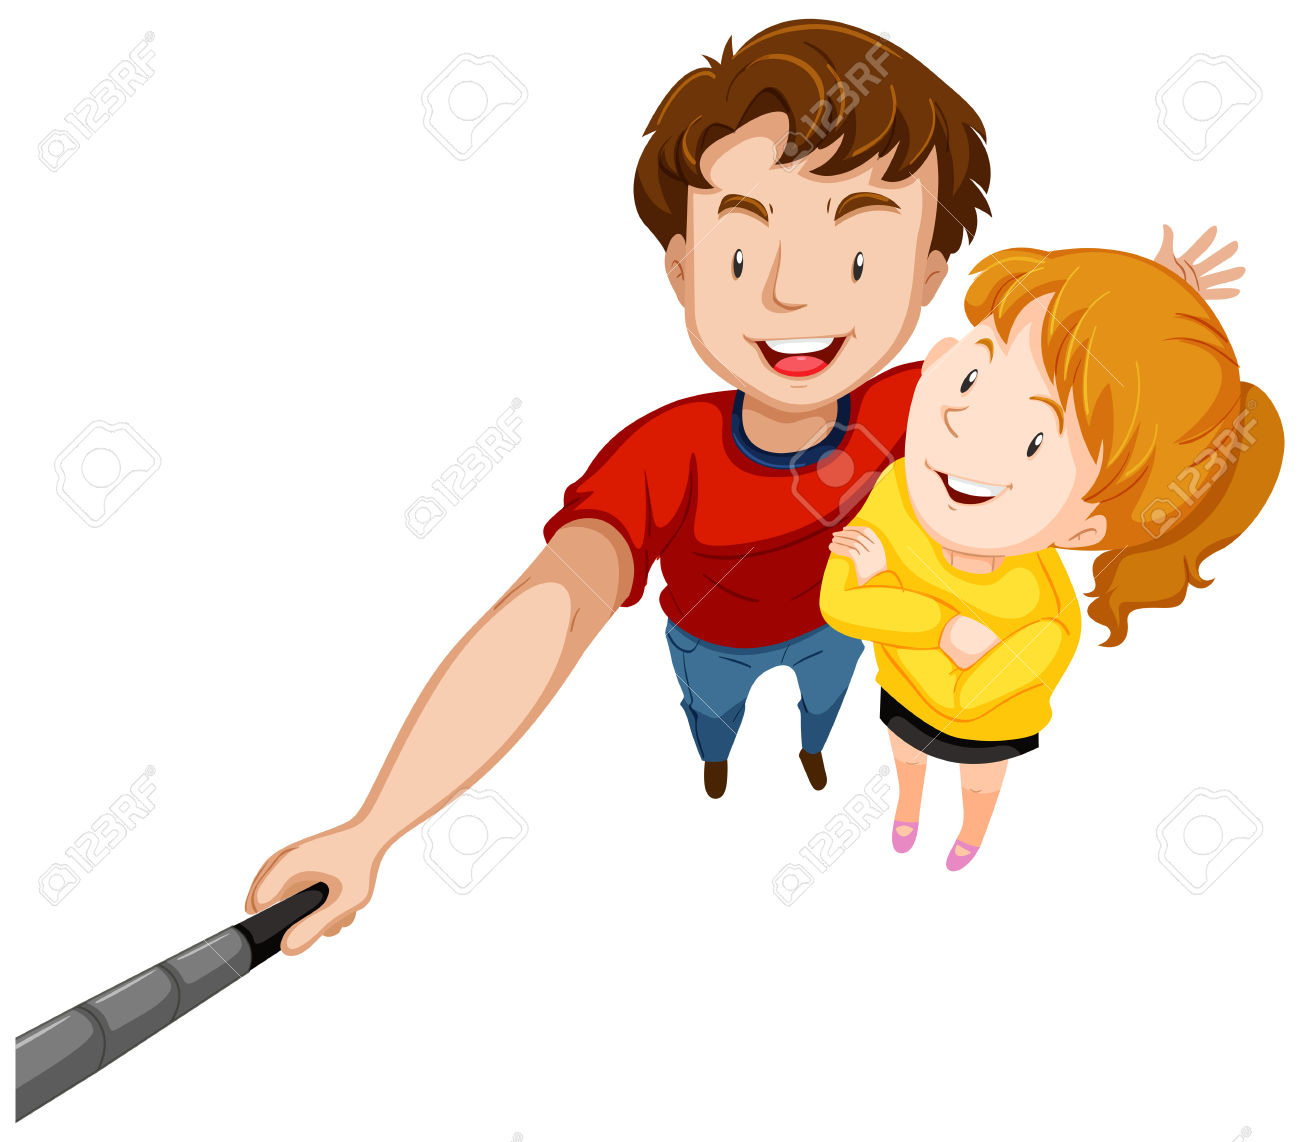 Clipart man with big smile jpg transparent library Man And Woman With Big Smile Illustration Royalty Free Cliparts ... jpg transparent library